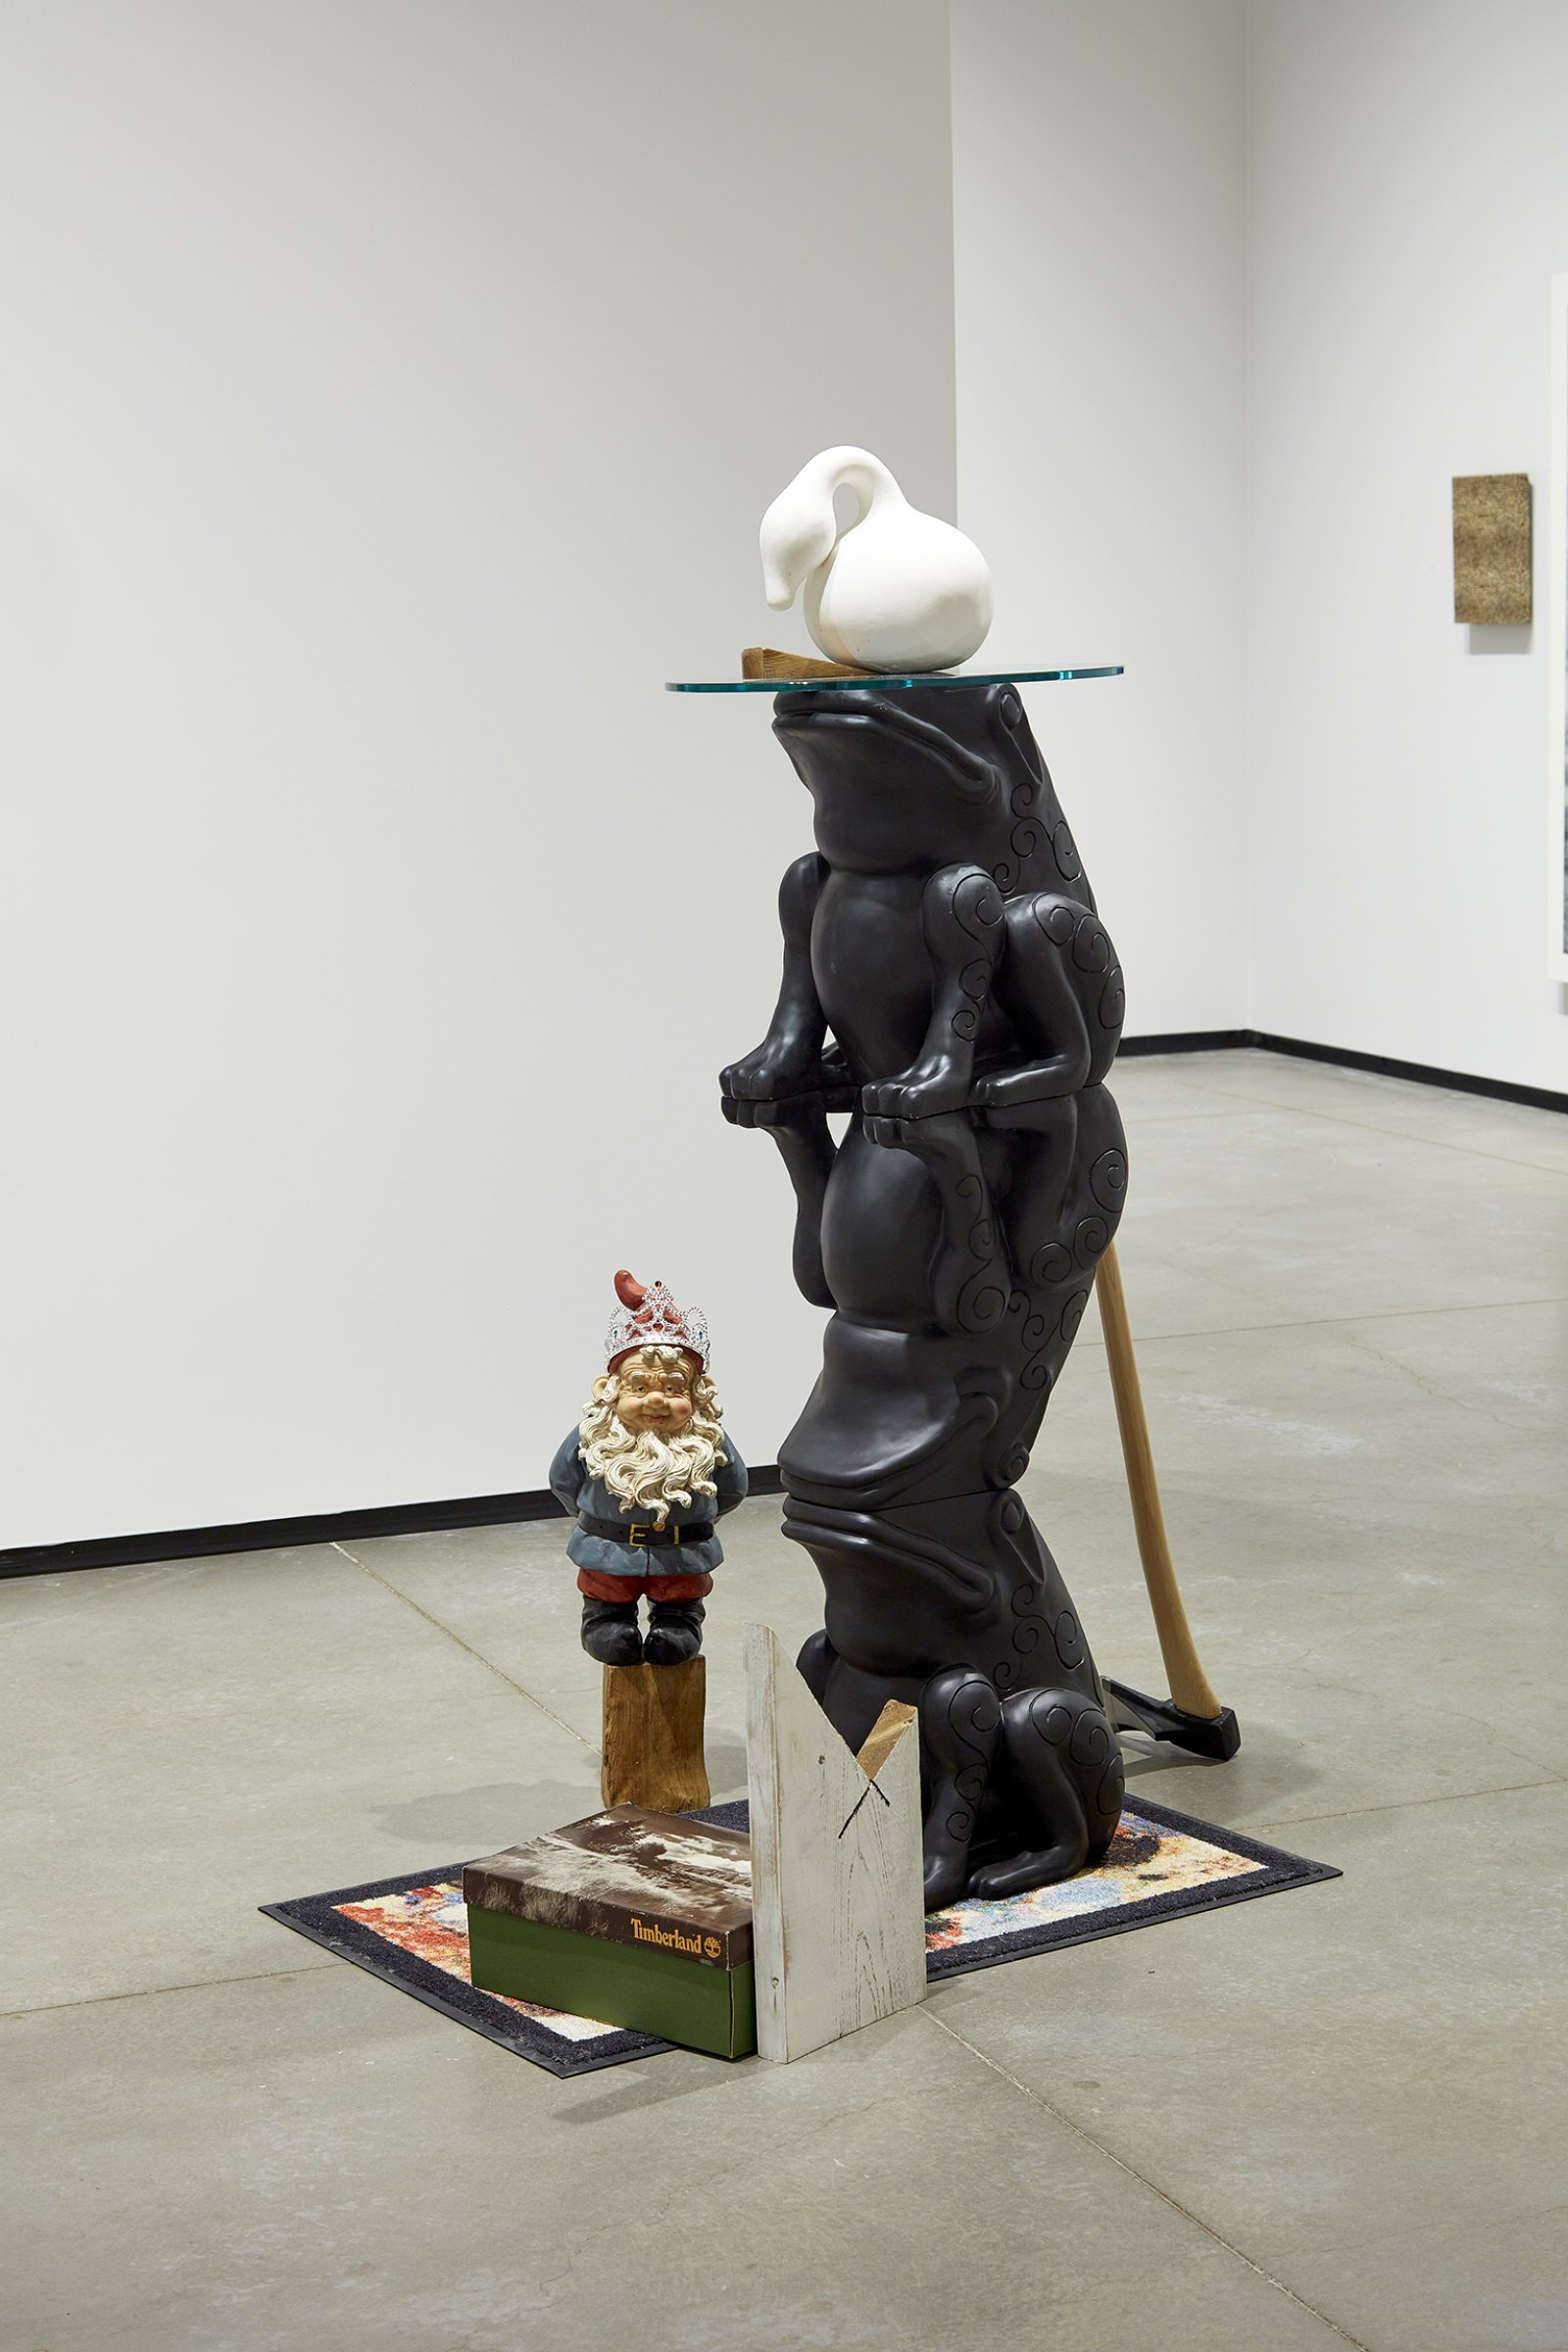 Ron Moppett, Sculptor Timberland, 2008, mixed media, 23 x 47 x 32 in. (158 x 119 x 81 cm). Installation view, Every Story Has Two Sides, Art Gallery of Alberta, Edmonton, 2016 by Damian Moppett